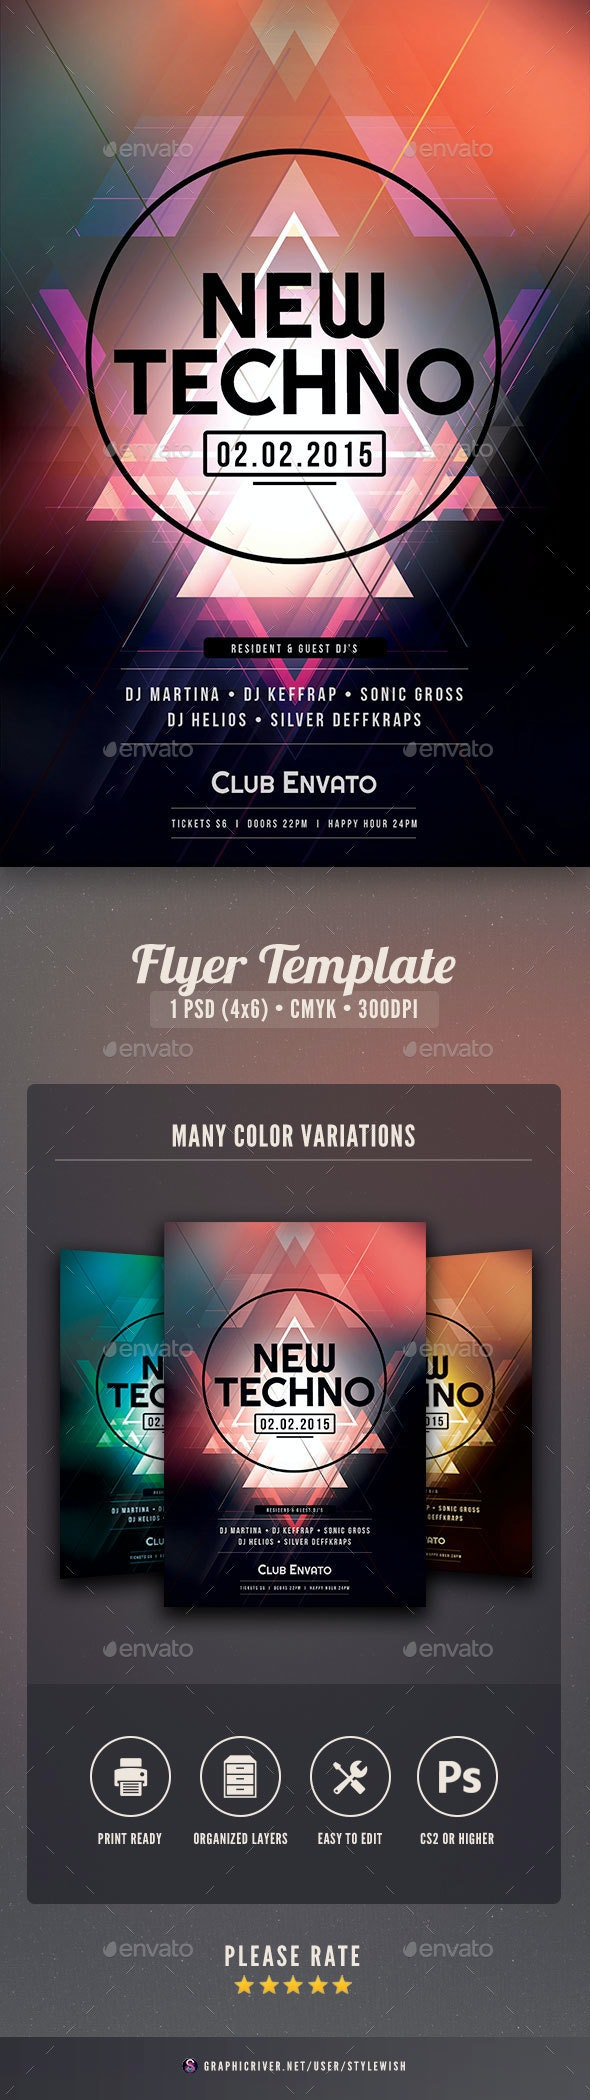 New Techno Flyer - Clubs & Parties Events